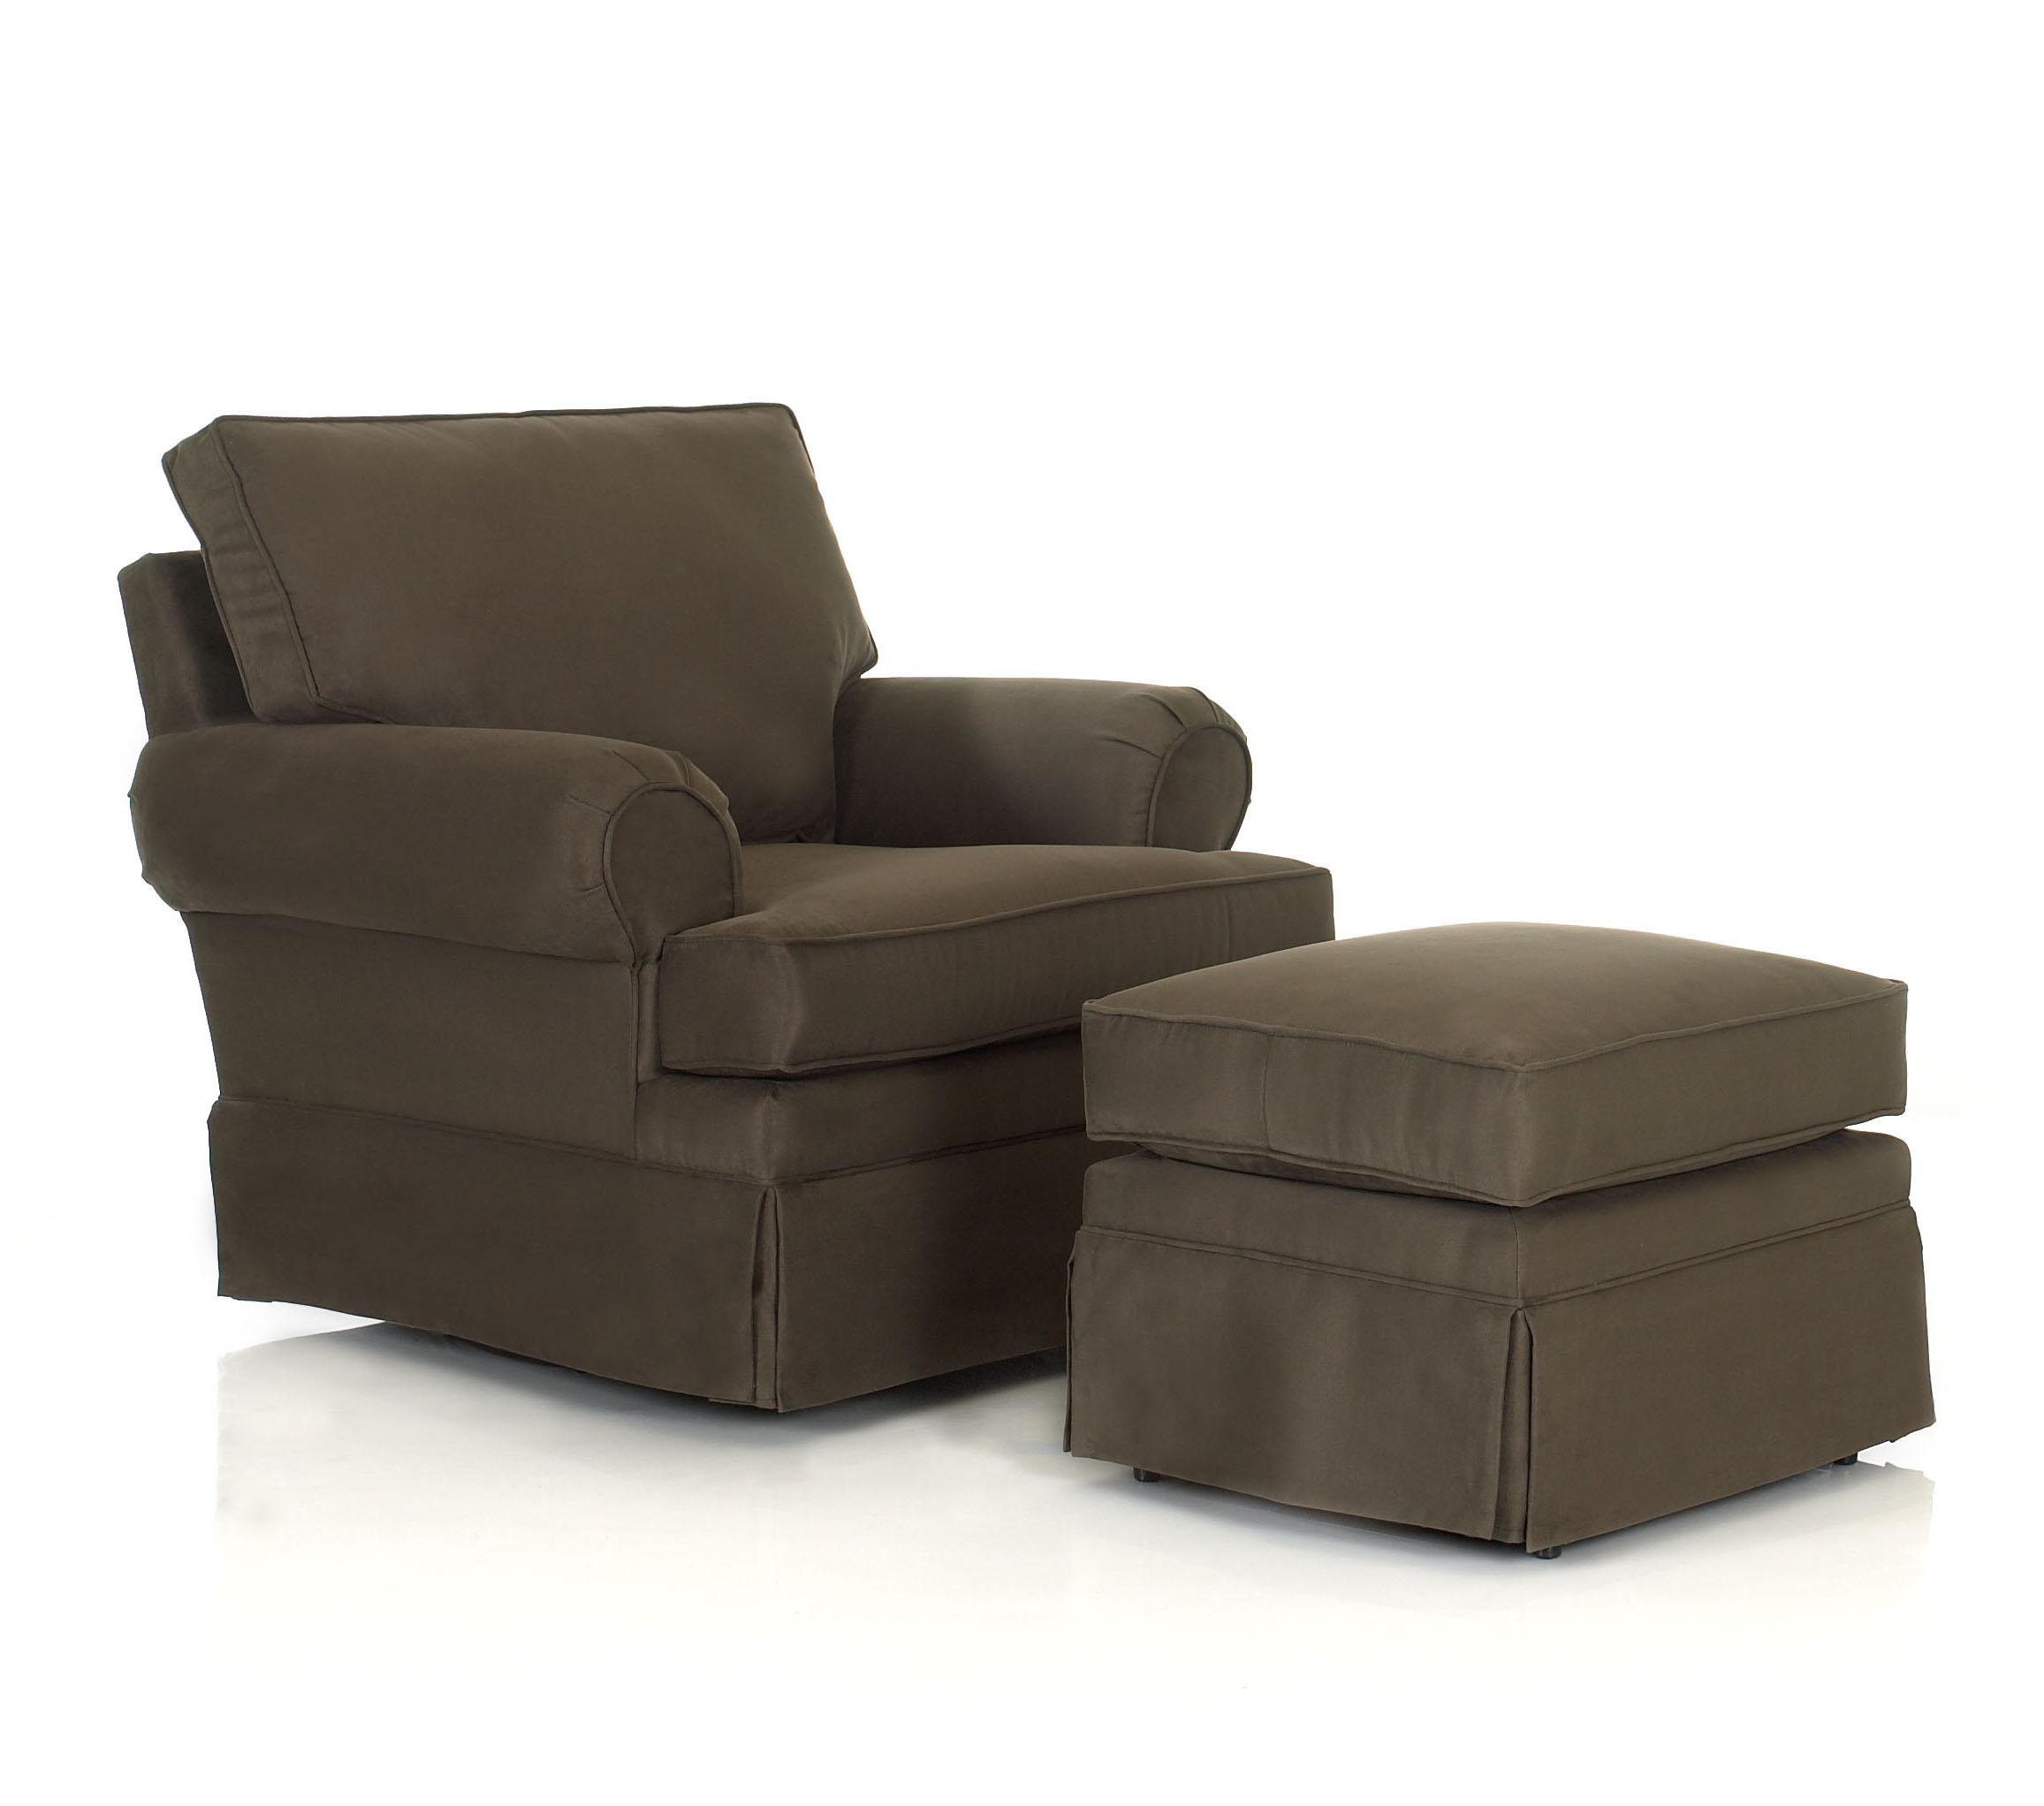 Chairs and Accents Carolina Chair and Ottoman by Klaussner at Northeast Factory Direct